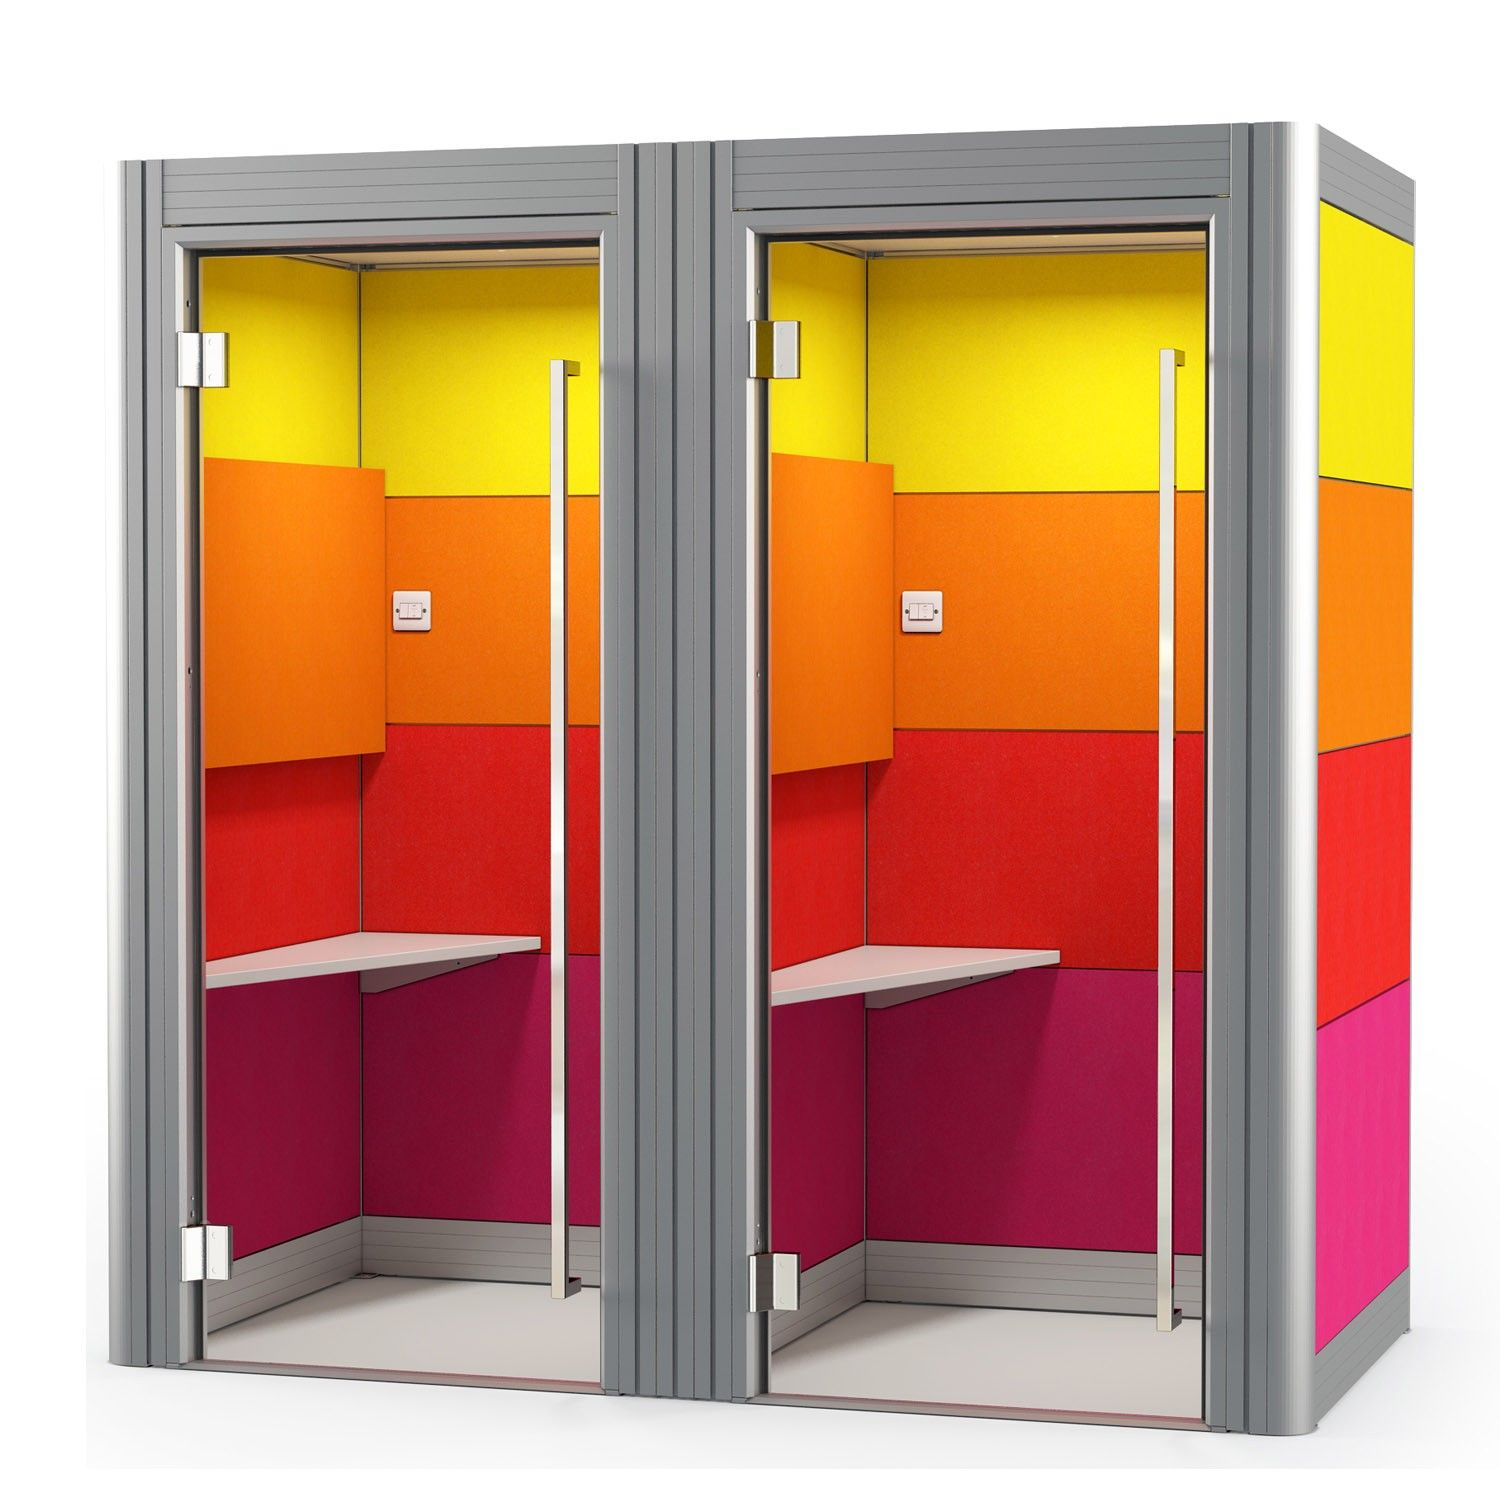 Spacio Phone Booths | Acoustic Office Phone Booths | Apres Furniture